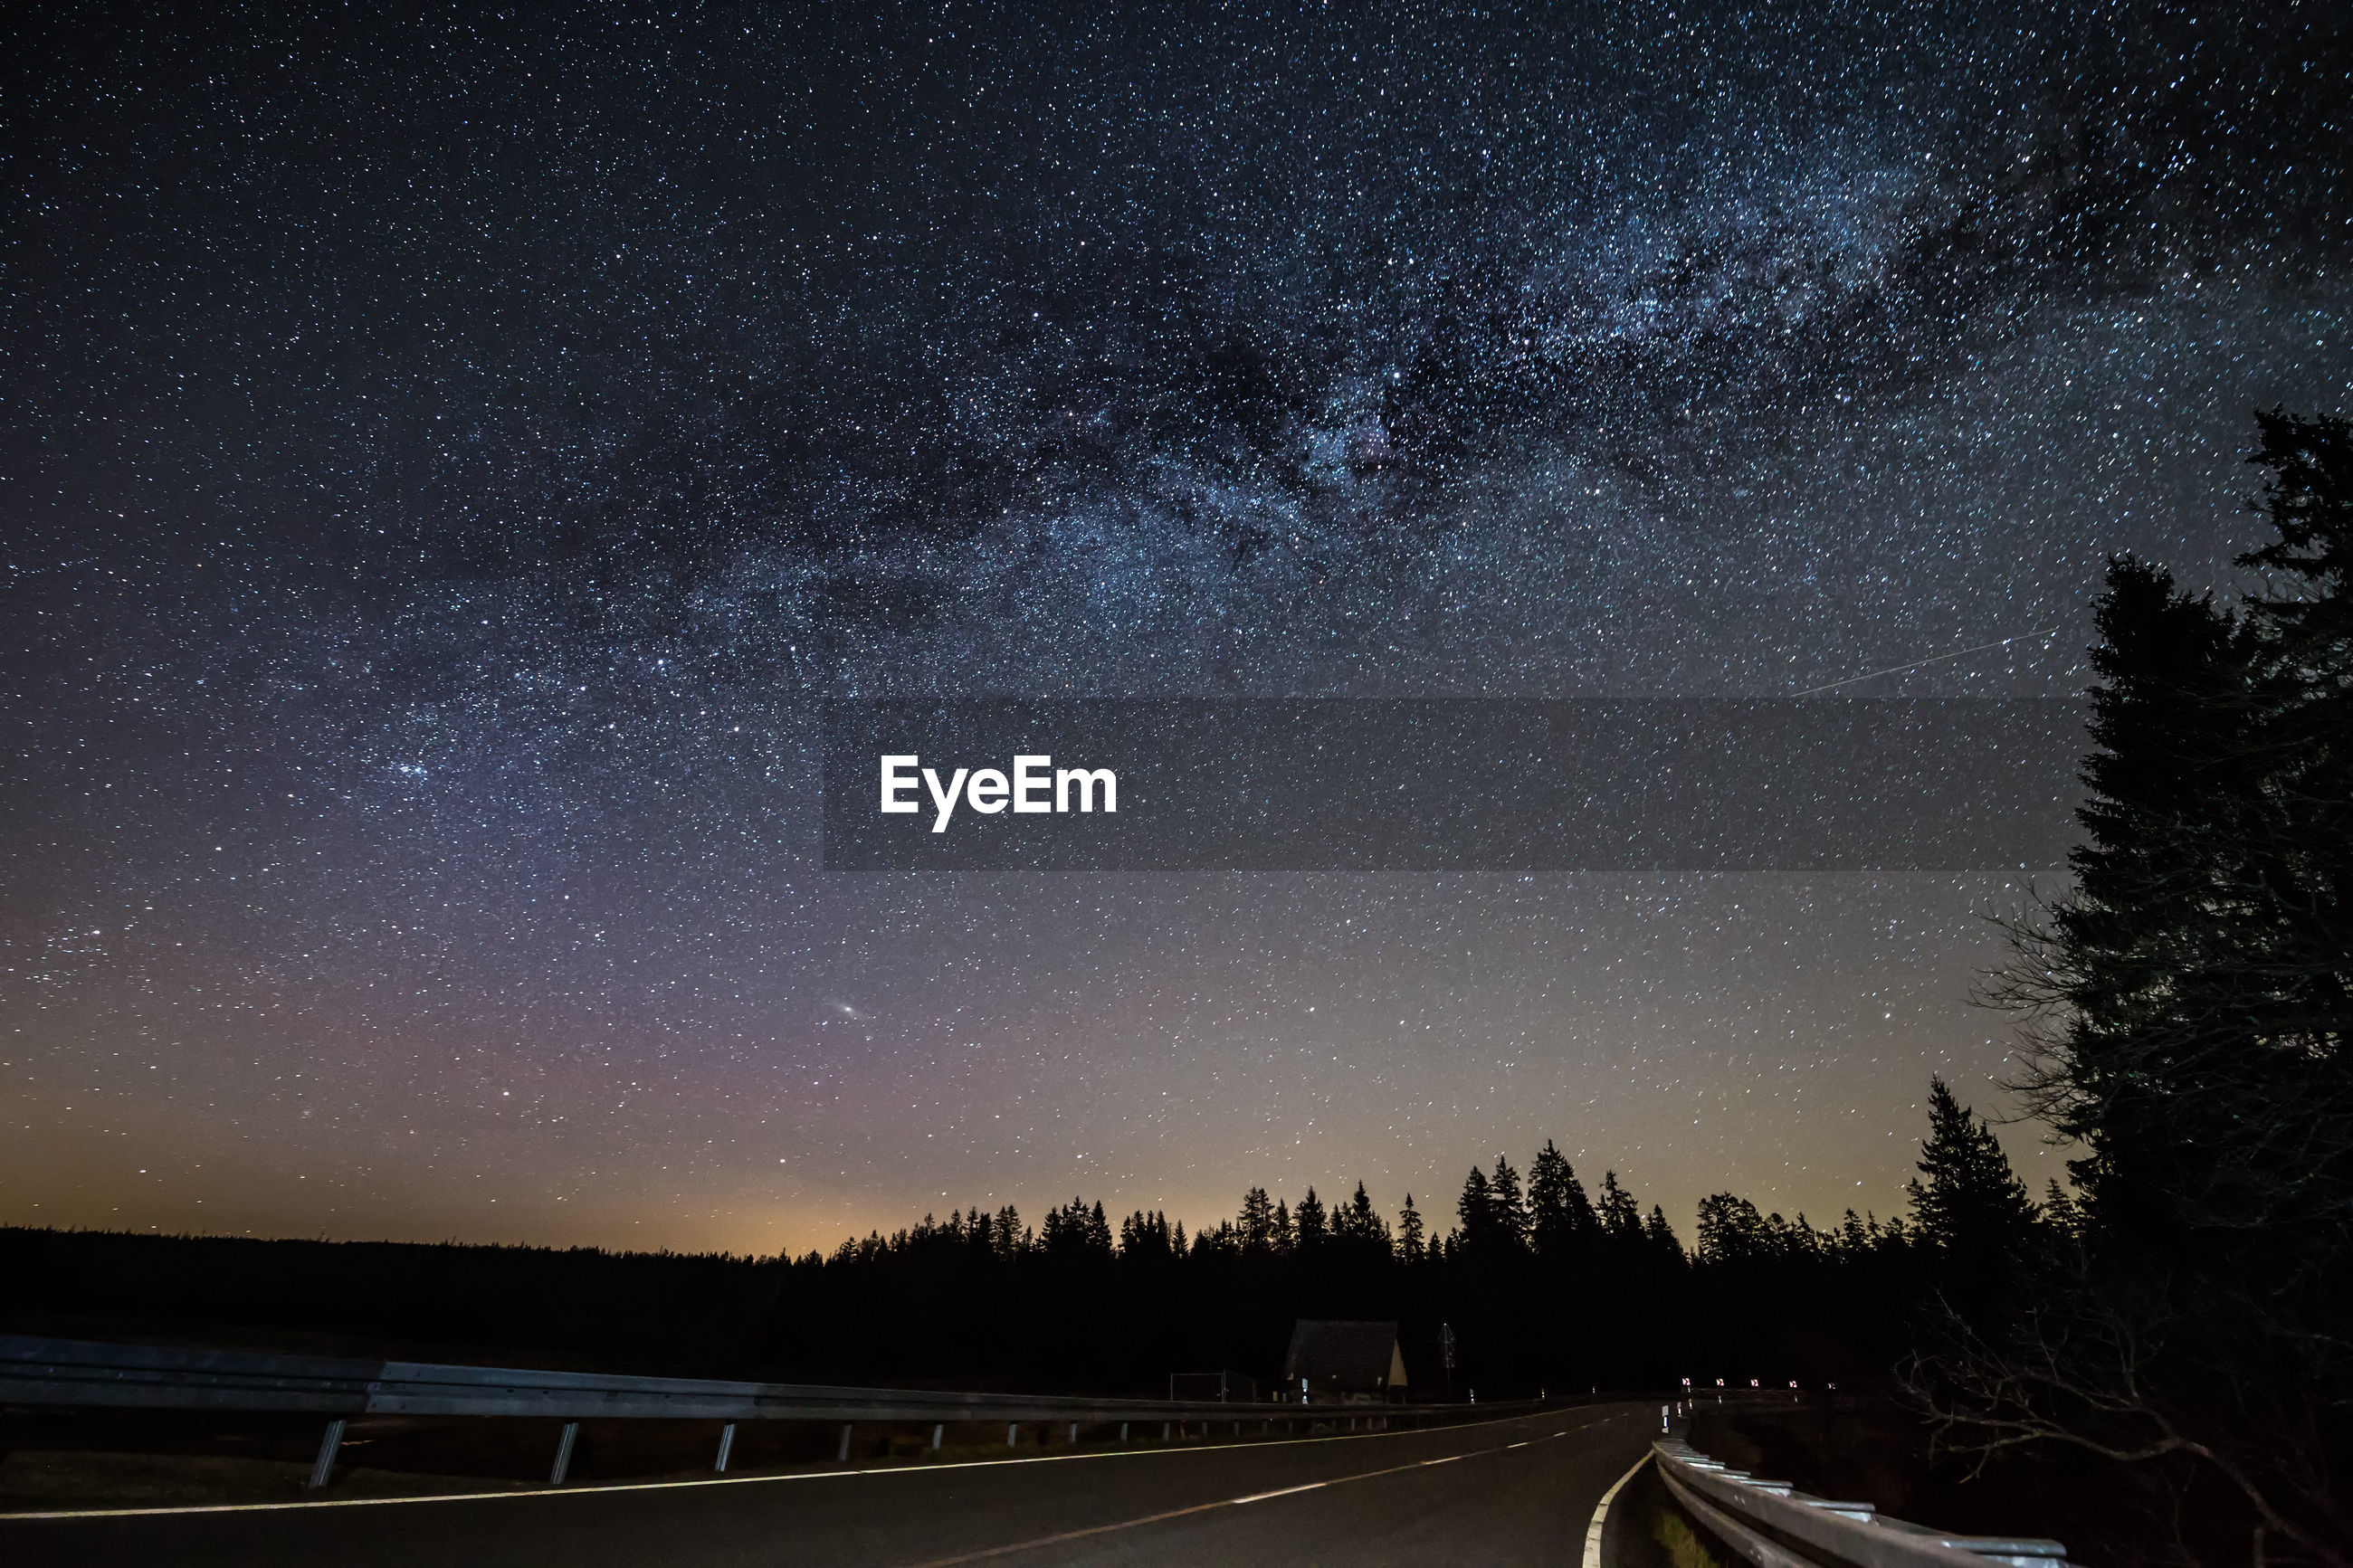 ROAD AMIDST TREES AGAINST STAR FIELD AT NIGHT